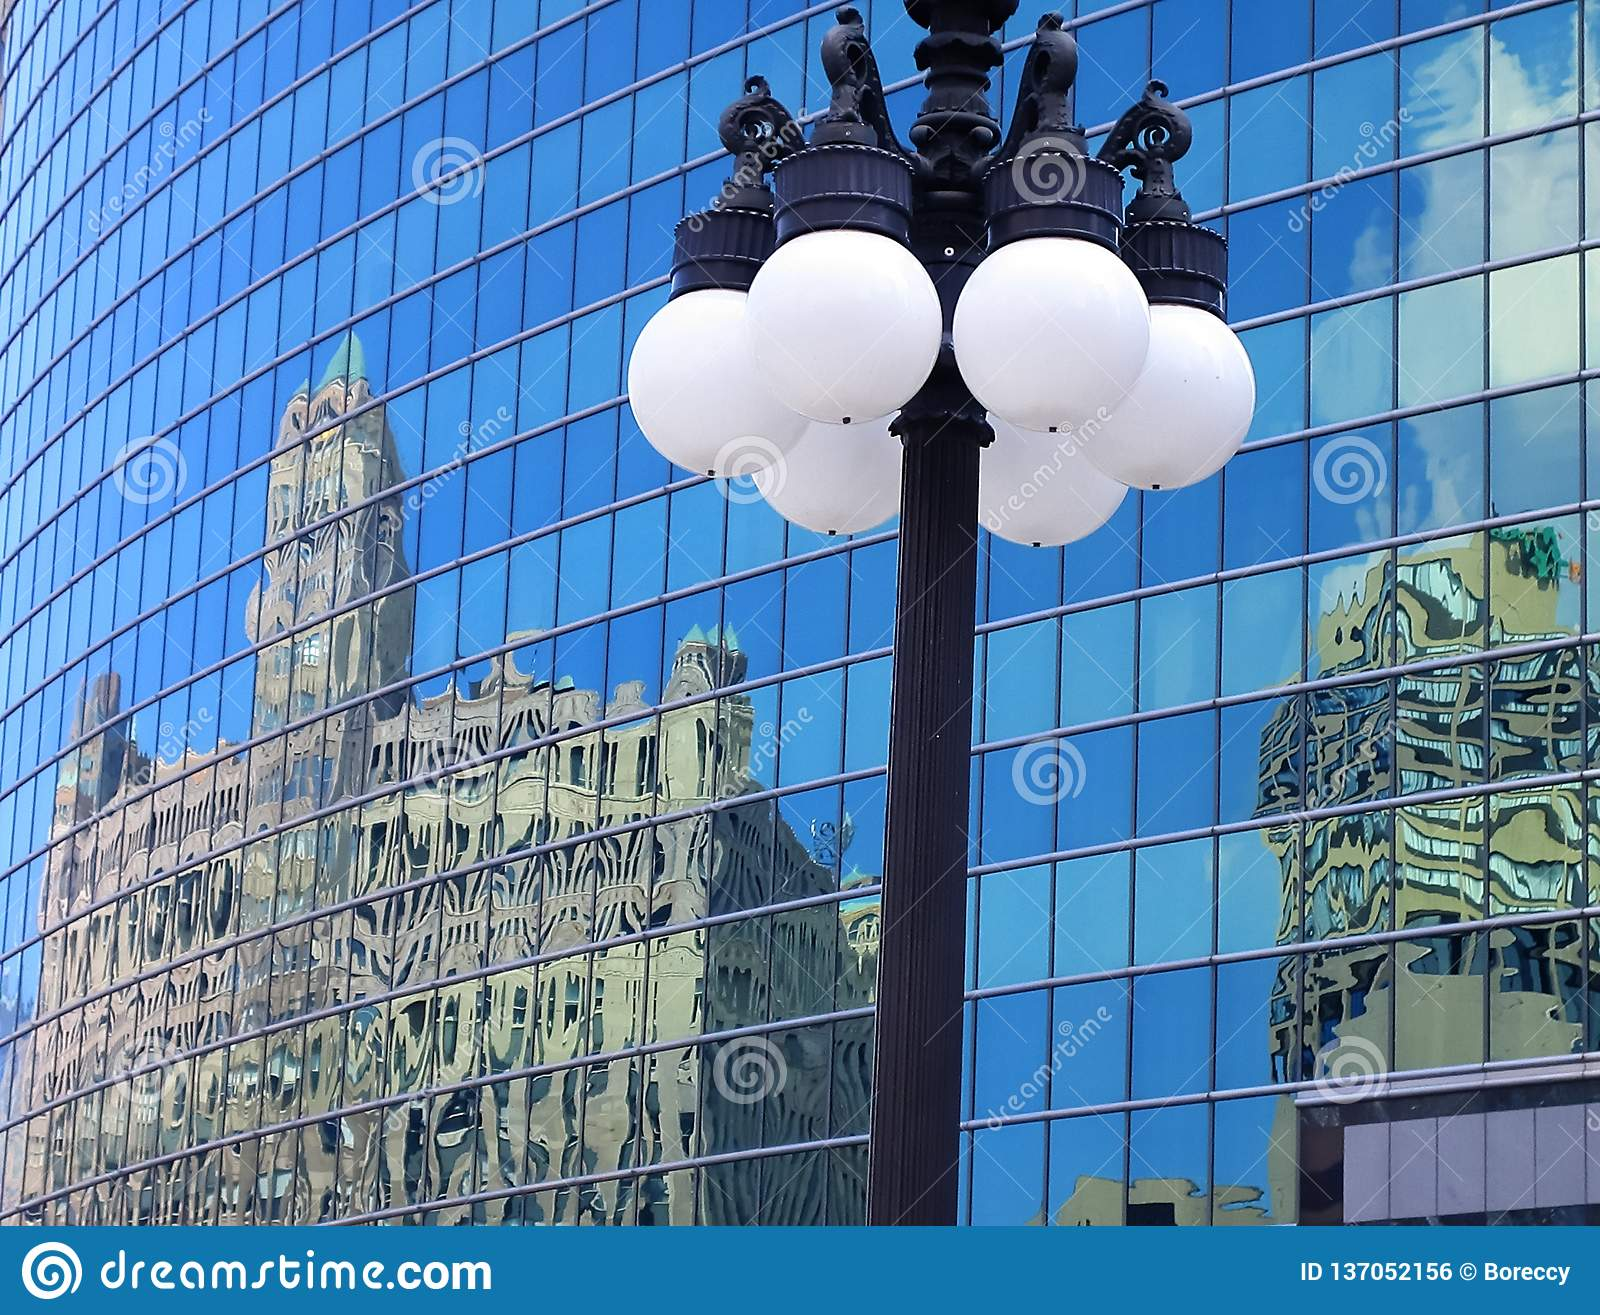 Reflections of architecture in a modern building of Chicago